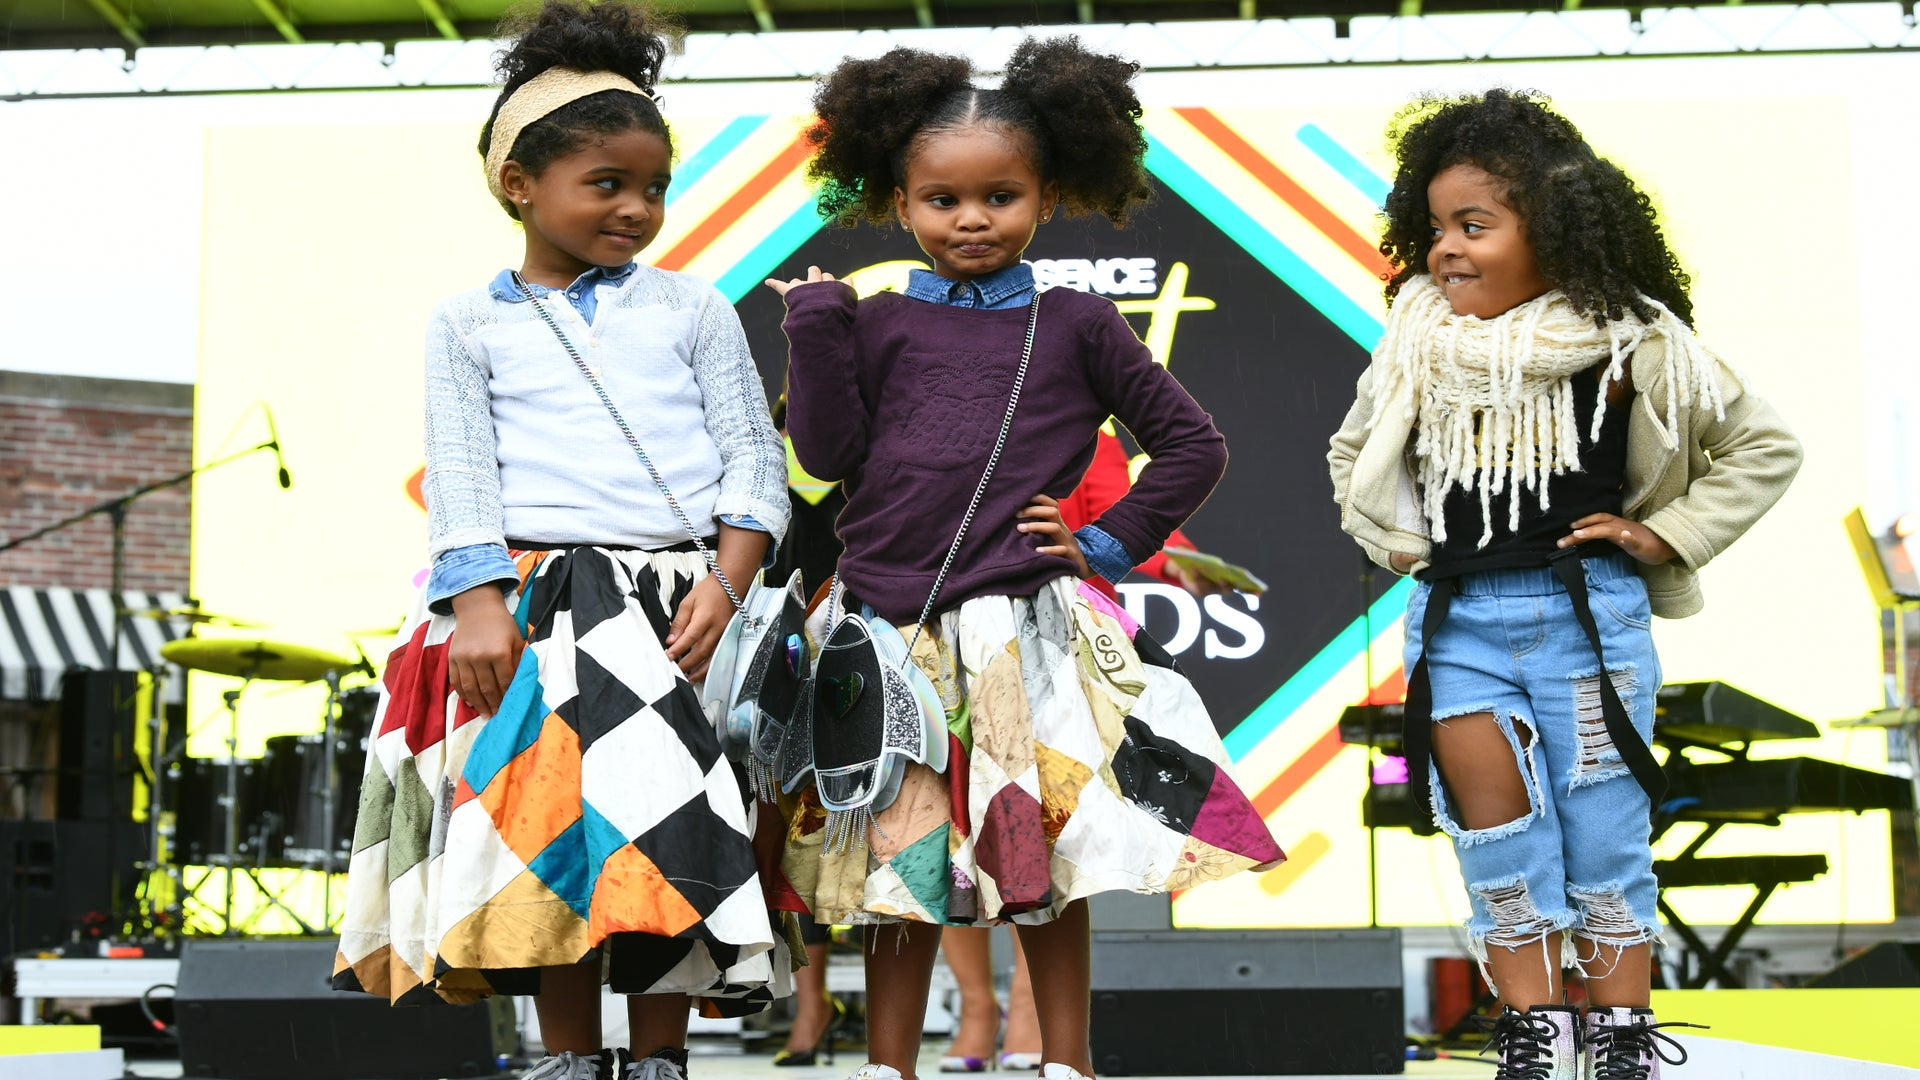 ESSENCE Welcomes Over 80 Black-Owned Businesses And Thousands Of Attendees For 2018 Street Style Festival